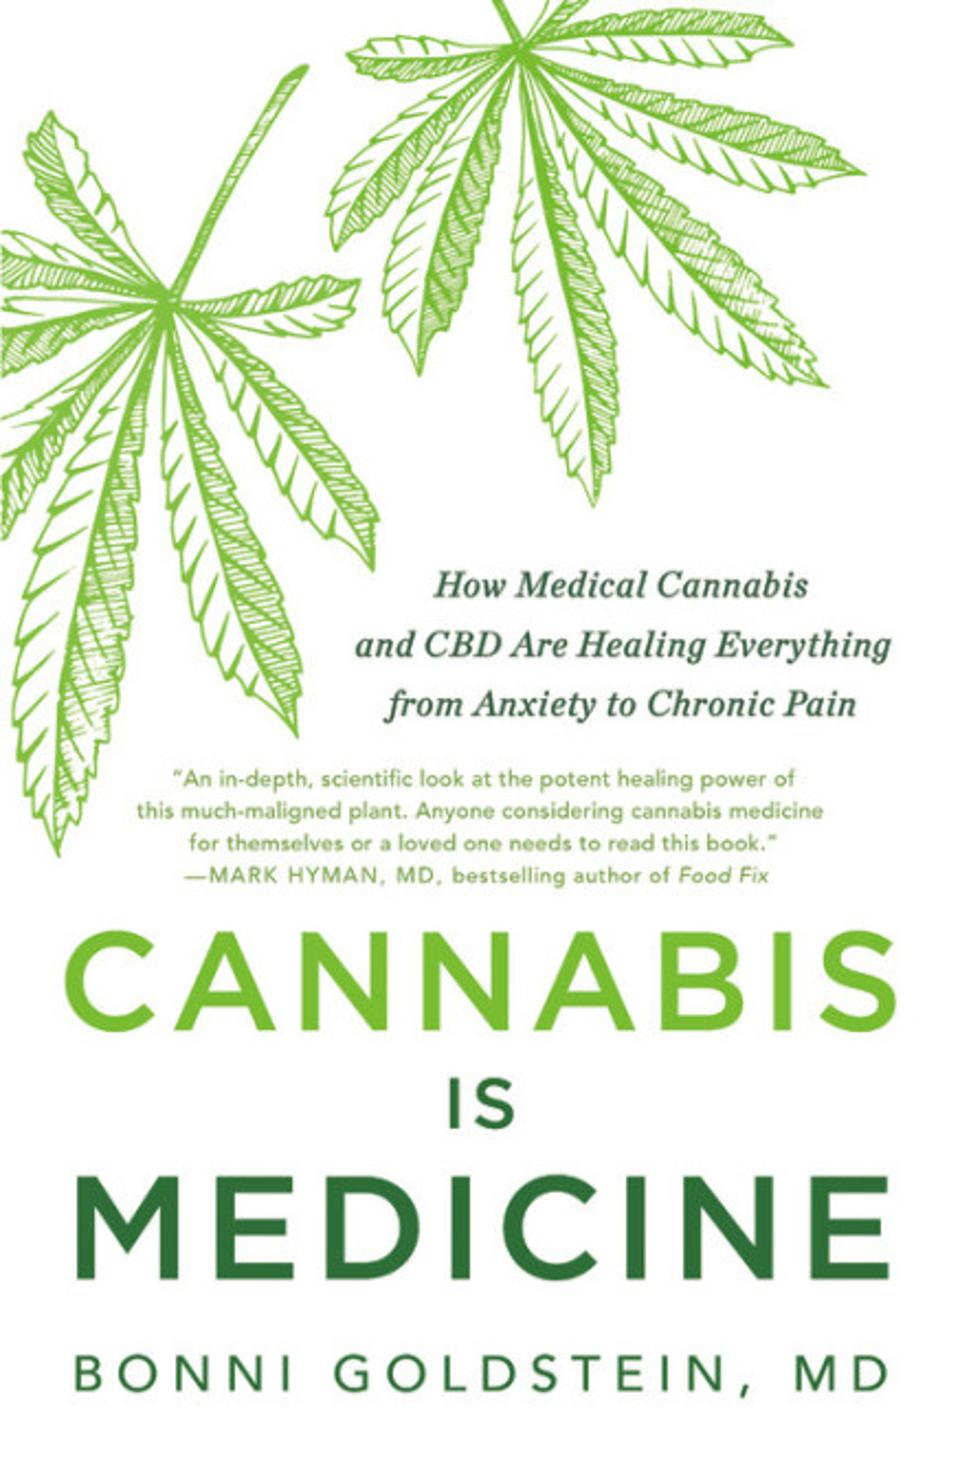 Dr. Bonni Goldstein's book, Cannabis Is Medicine